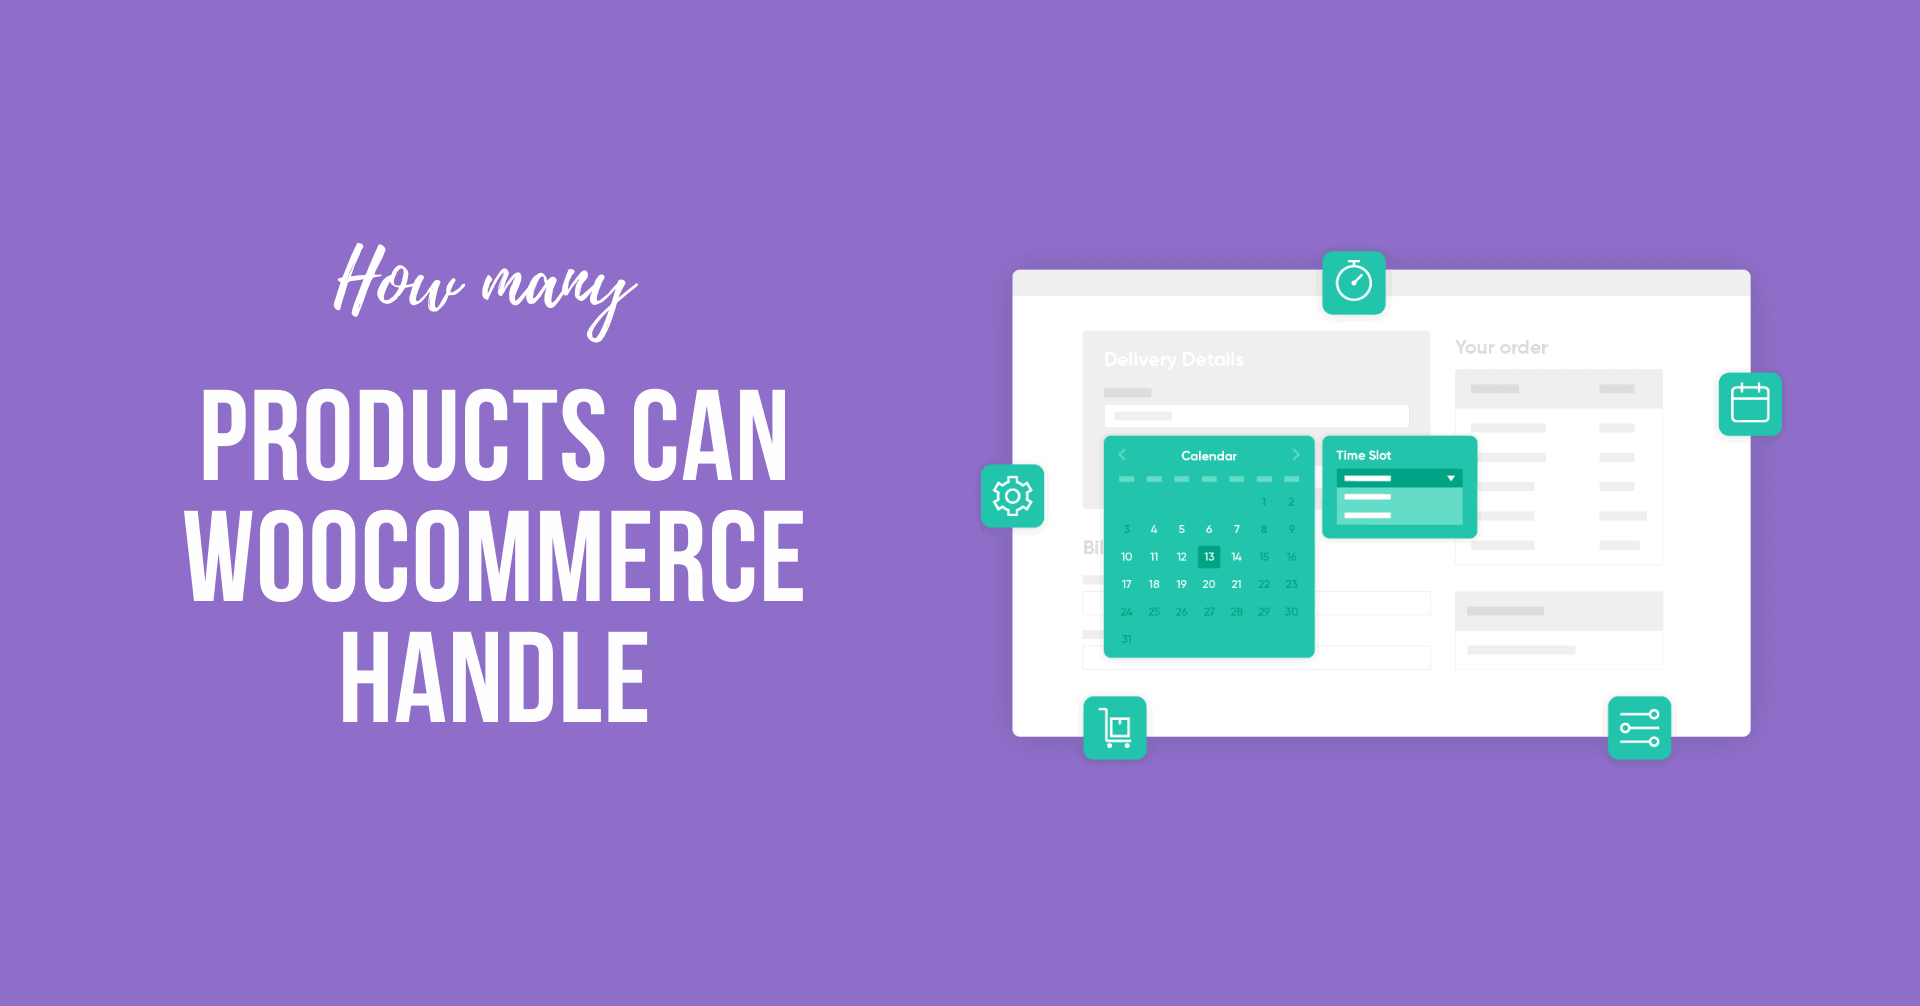 How many Products can WooCommerce Handle